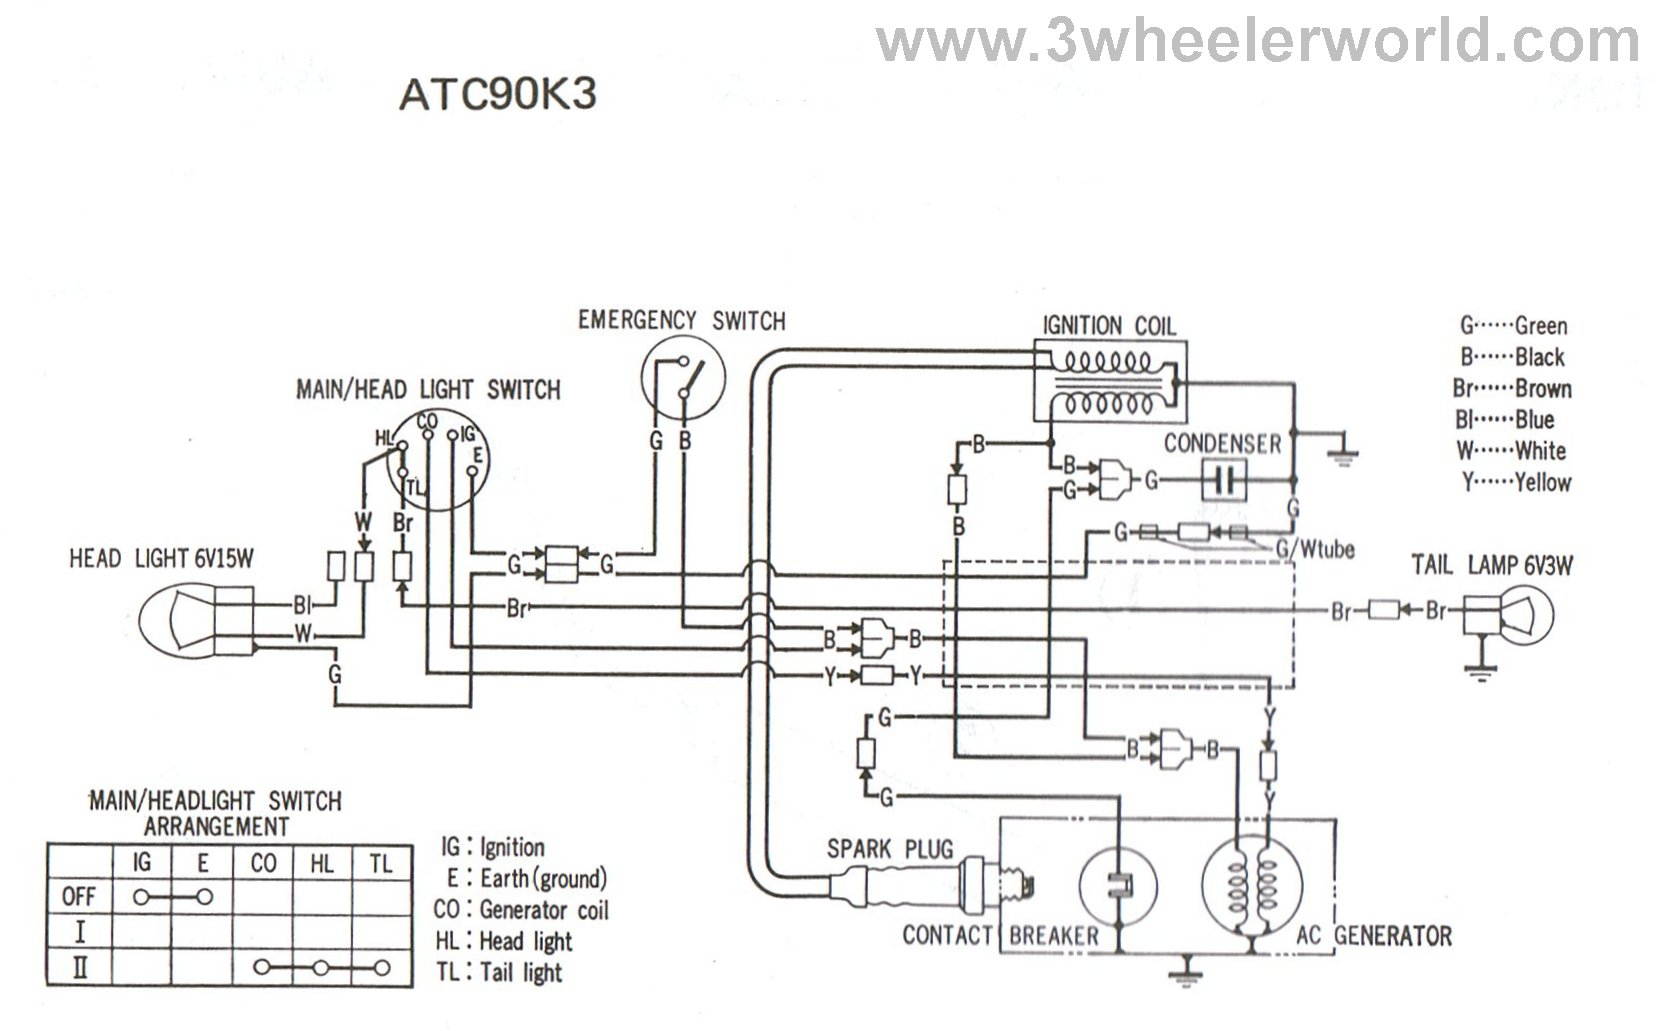 3 Wheeler World Tech Help Honda Wiring Diagrams 87 Klf 300 Atc90 K3 Factory Diagram